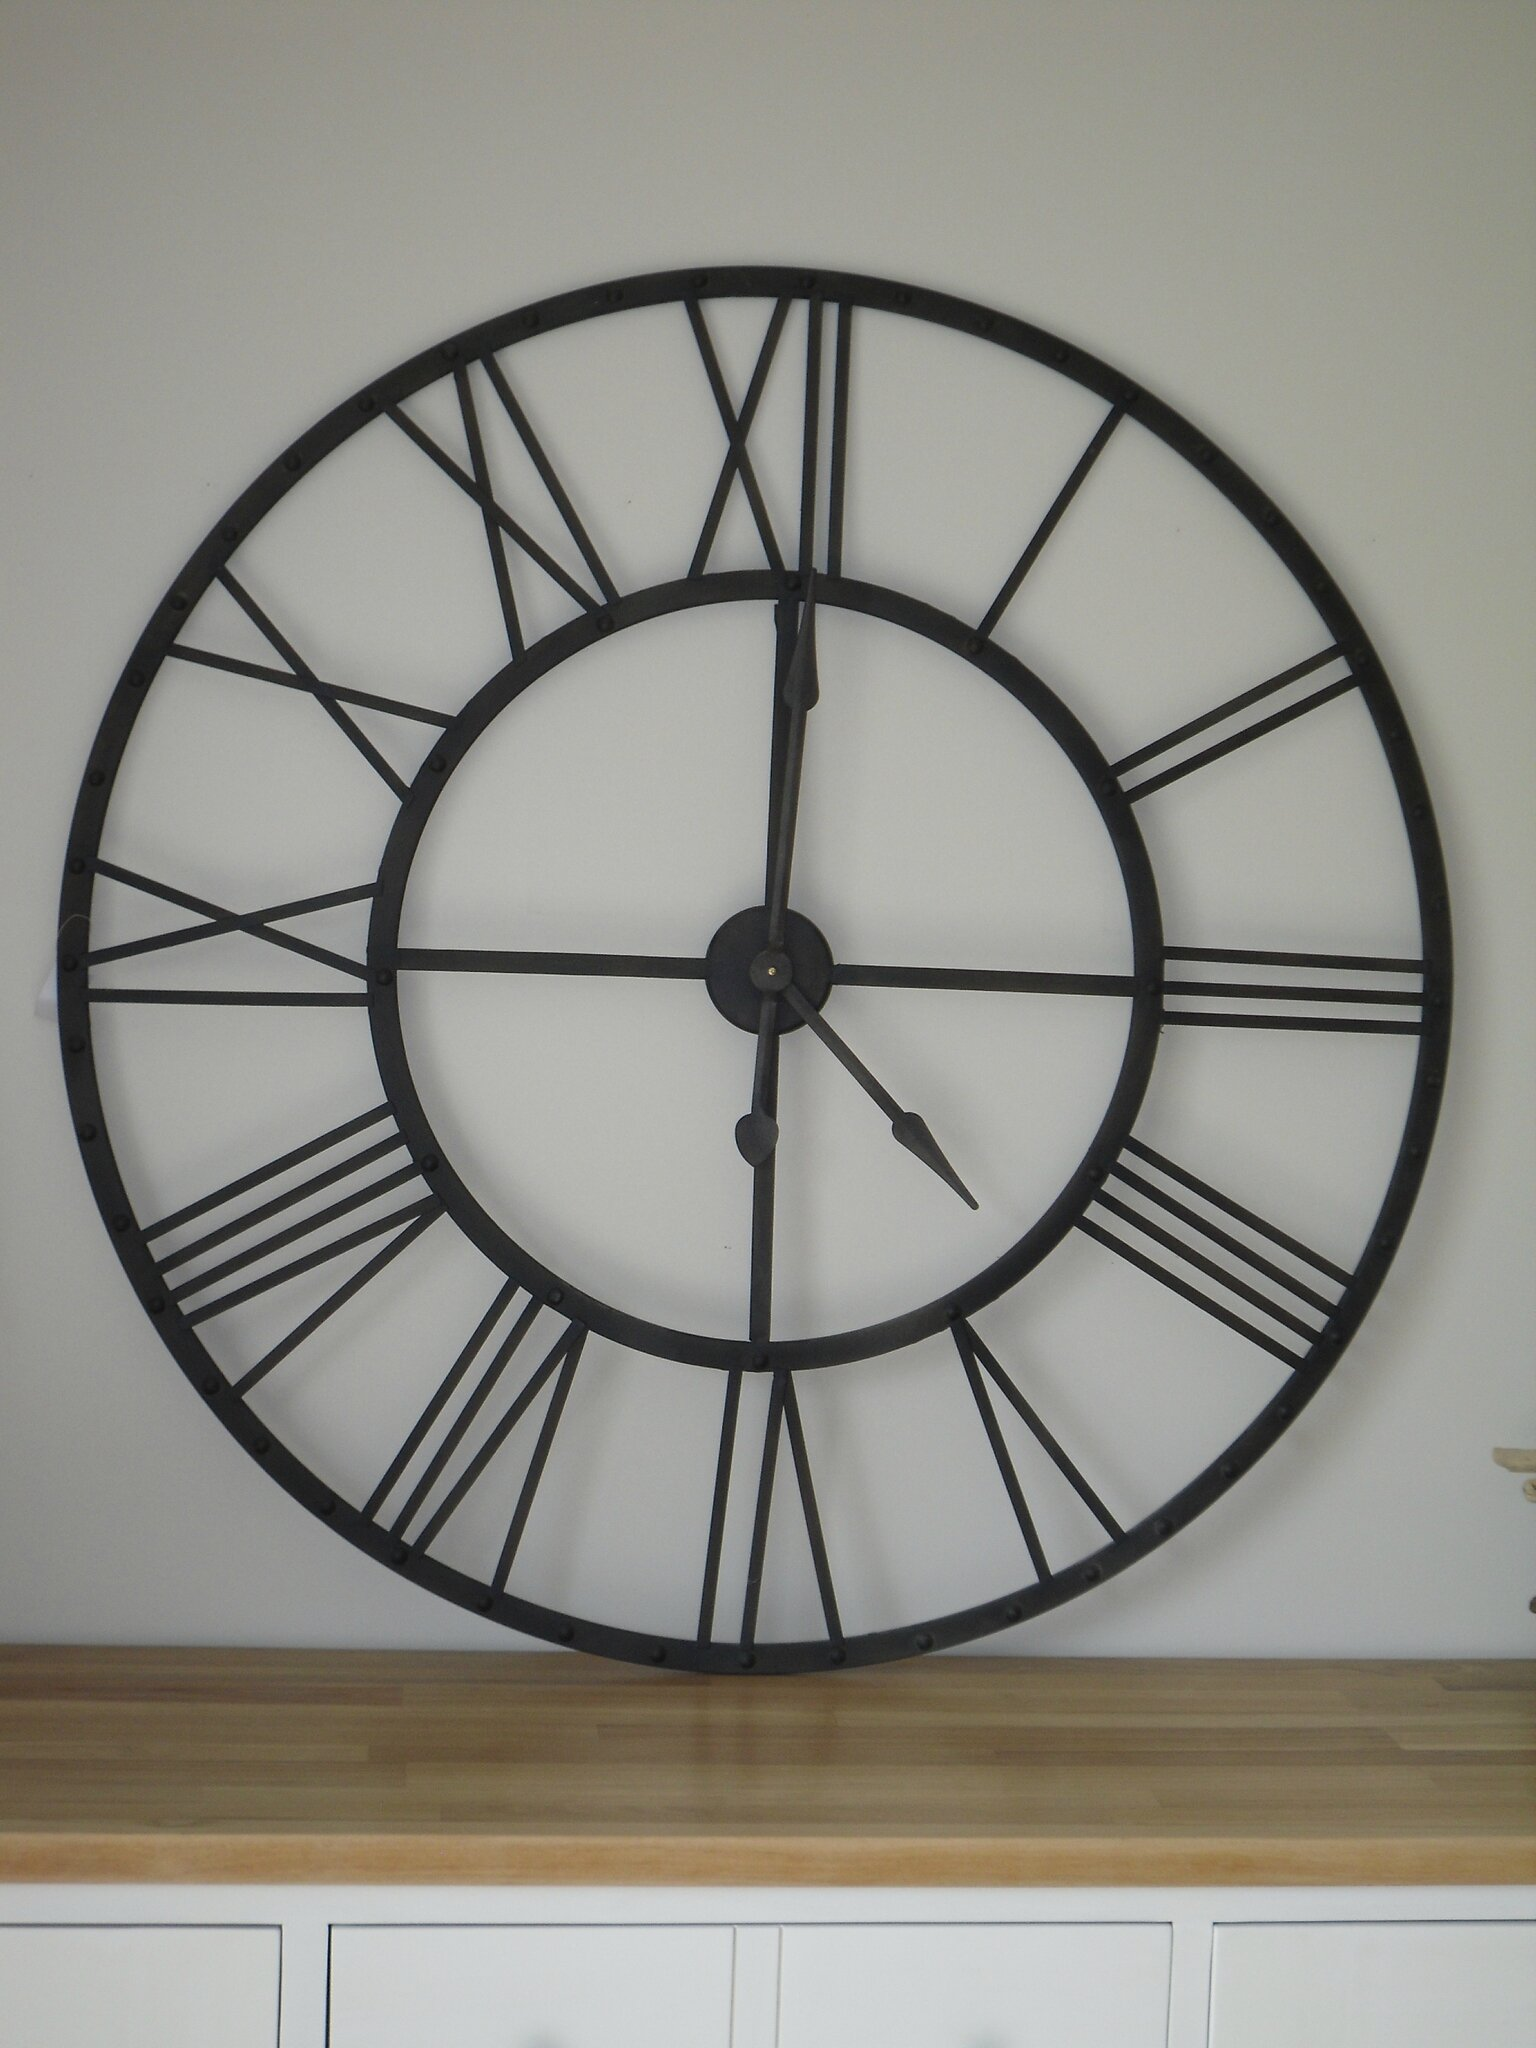 Horloge indus maisons du monde 4 photo de d co broc for Maisonsdumonde com nous contacter